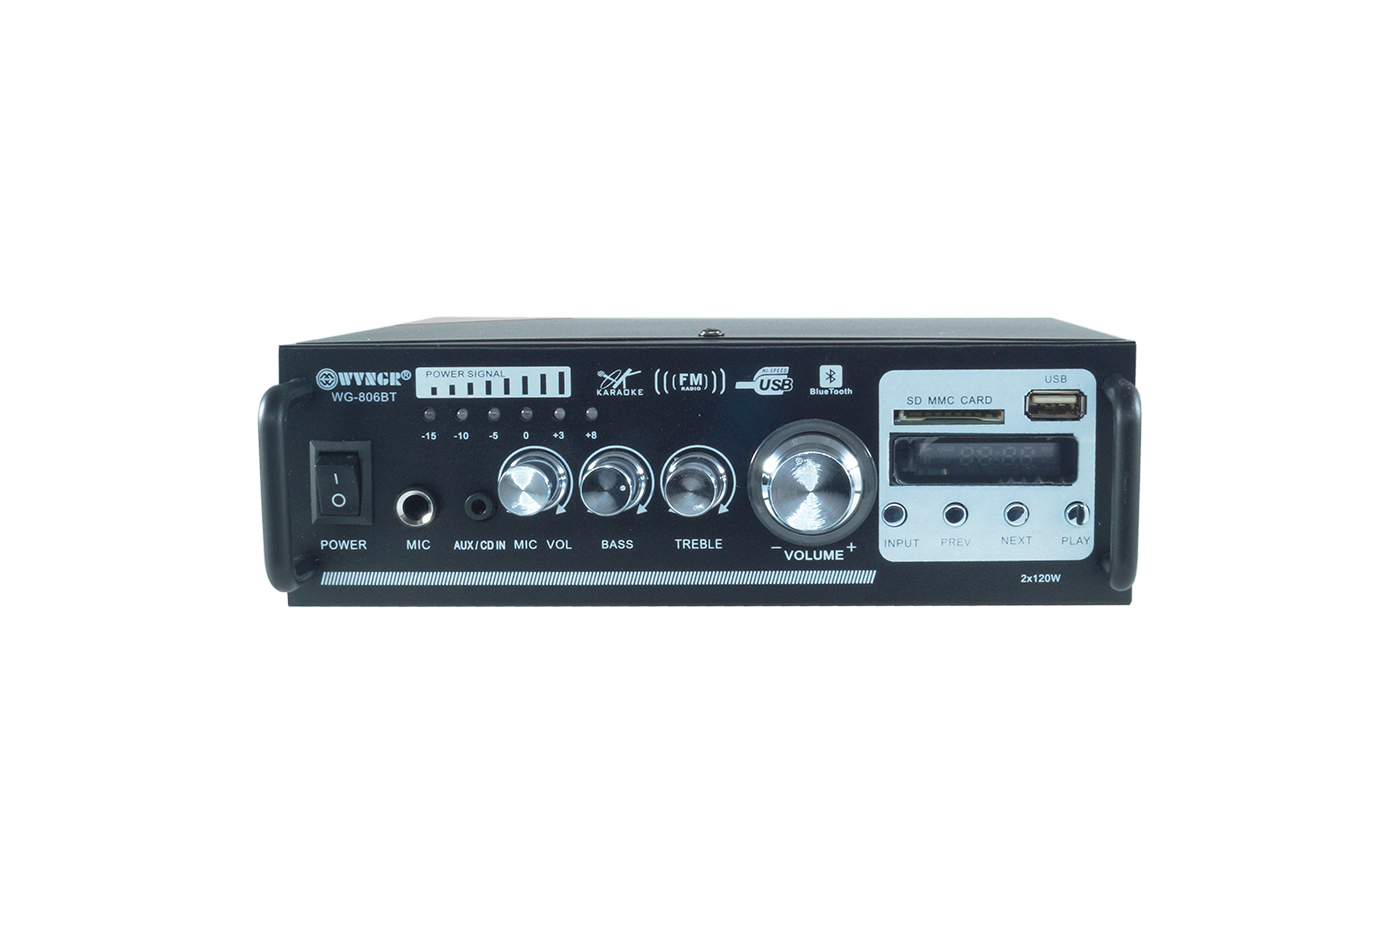 AMPLIFICATORE AUDIO STEREO 2 CANALI BLUETOOTH USB SD MP3 KARAOKE WG-806BT